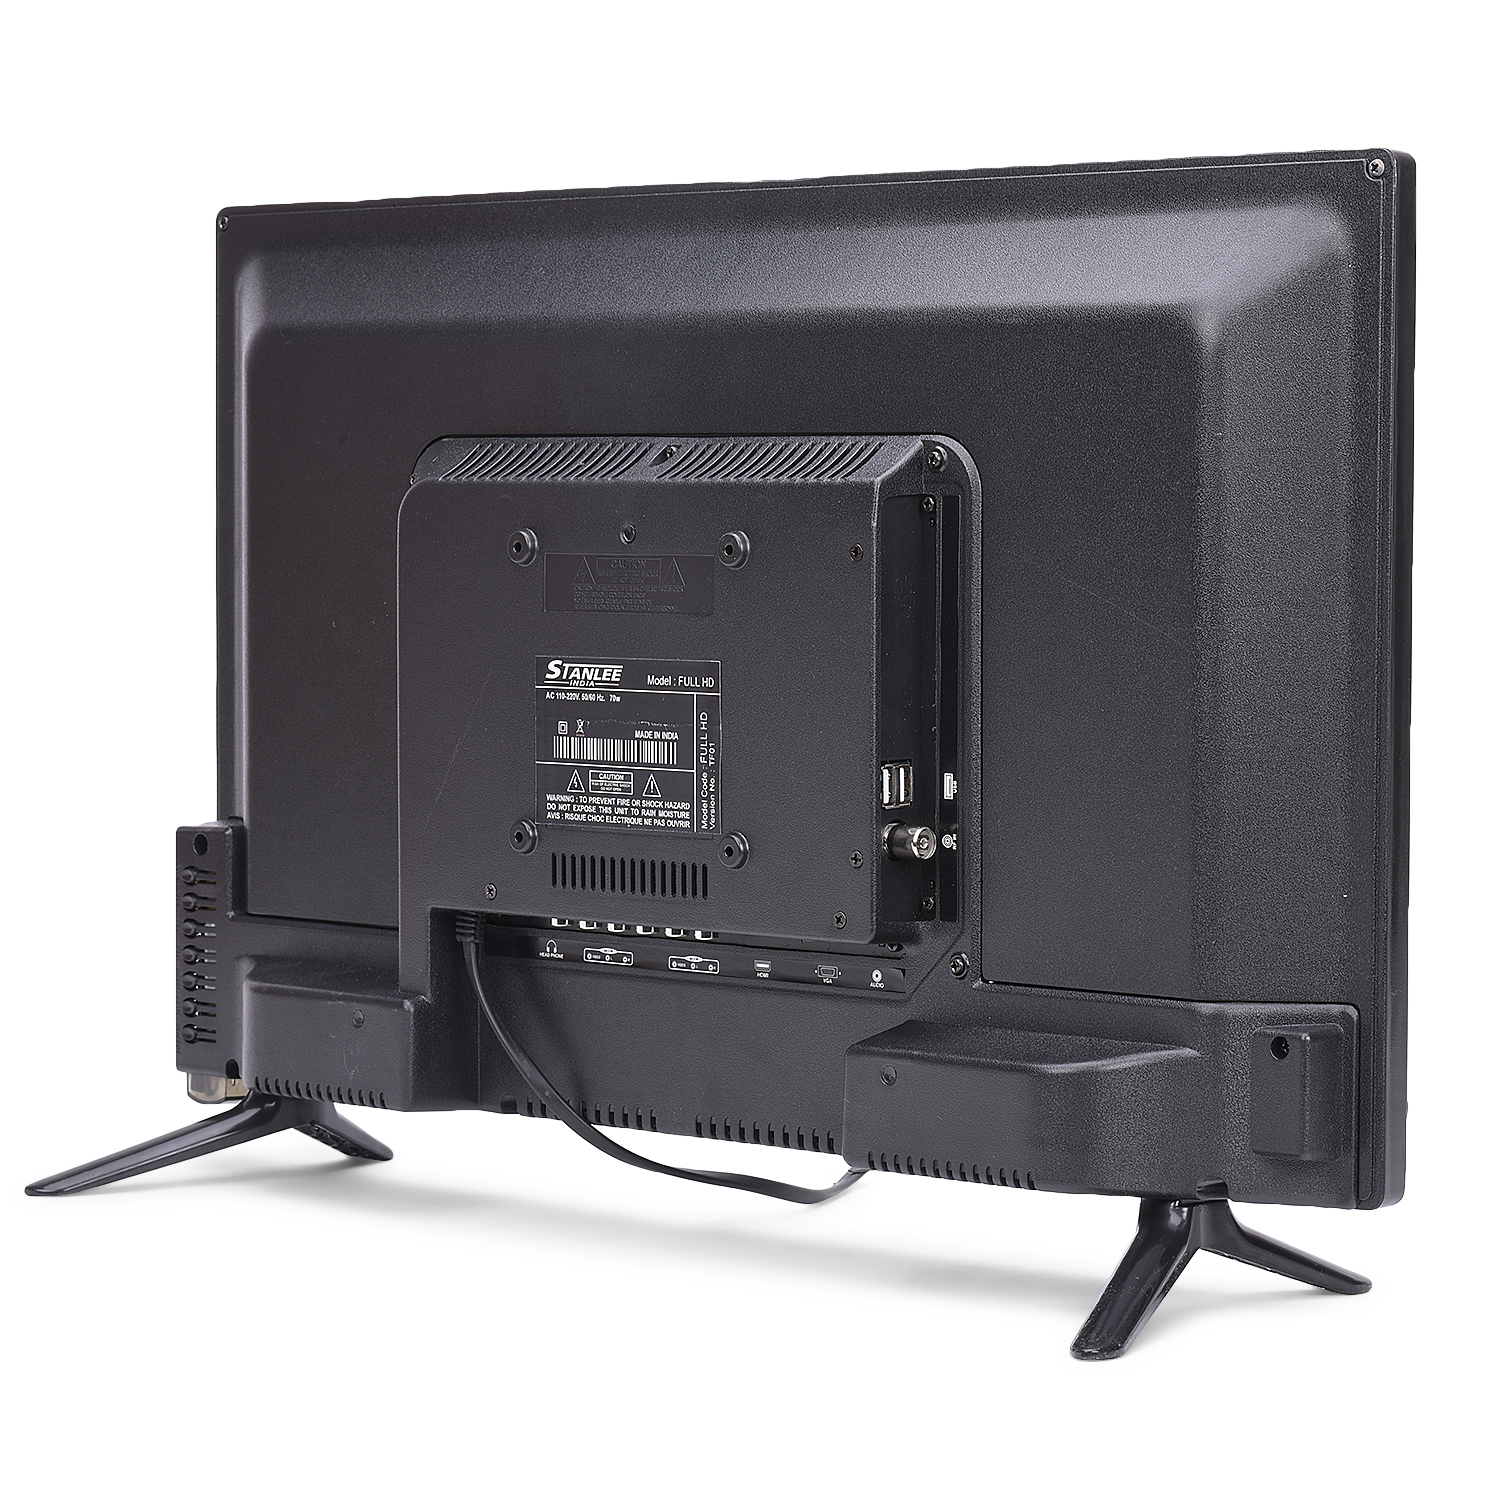 Stanlee India 24 Inch Pro X3 HD LED TV